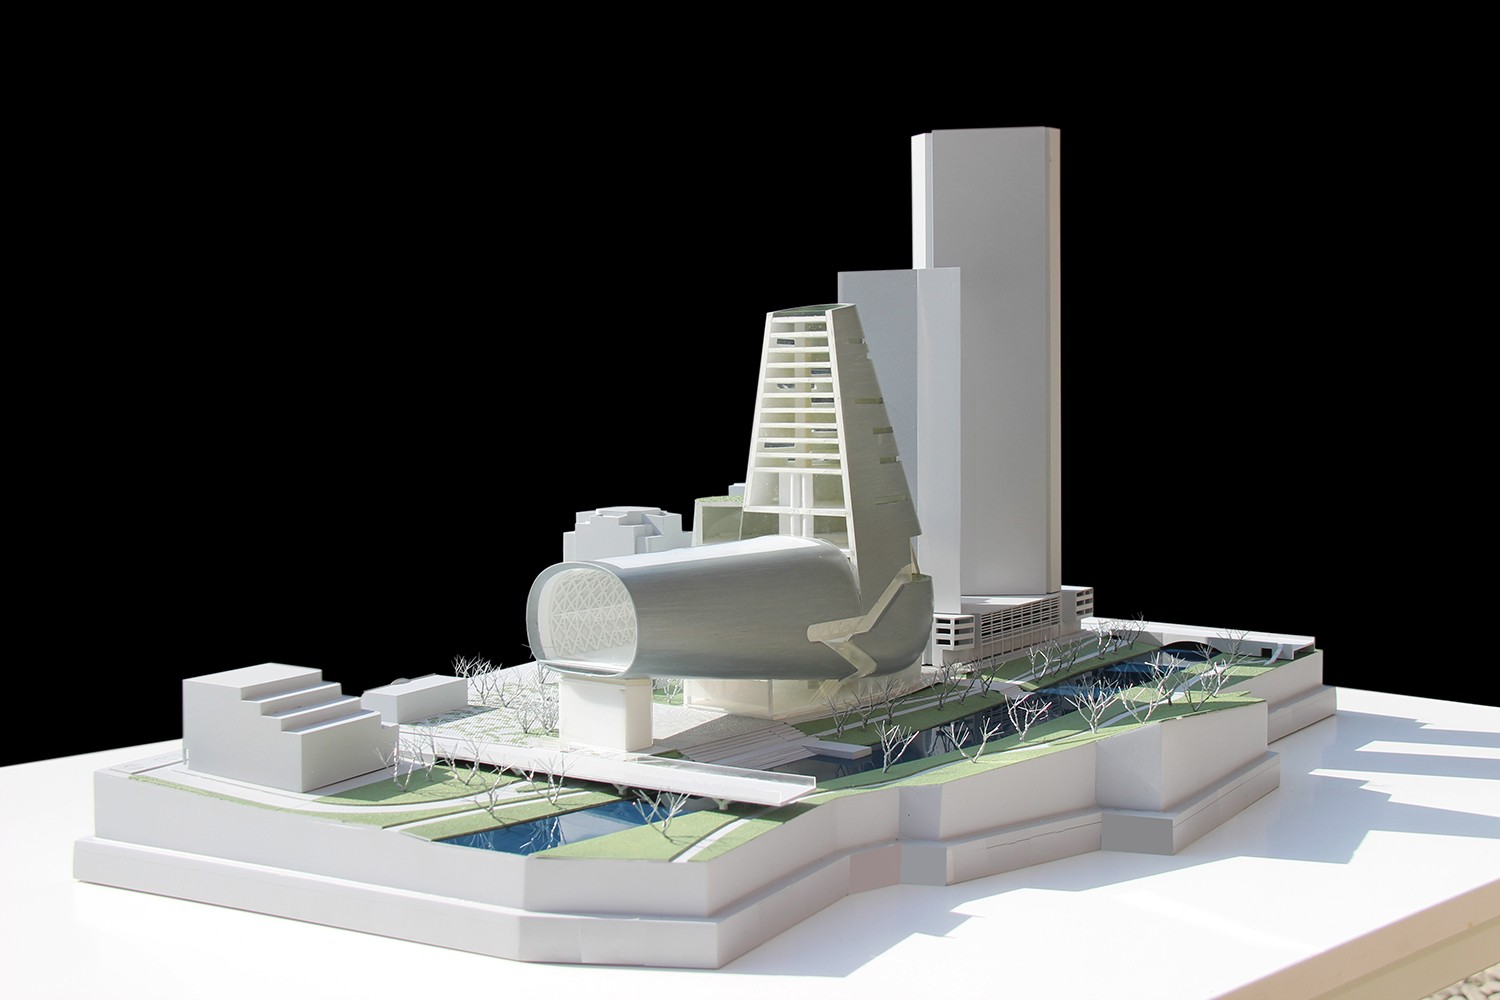 https://stevenholl.sfo2.digitaloceanspaces.com/uploads/projects/project-images/IMG_4538.jpg